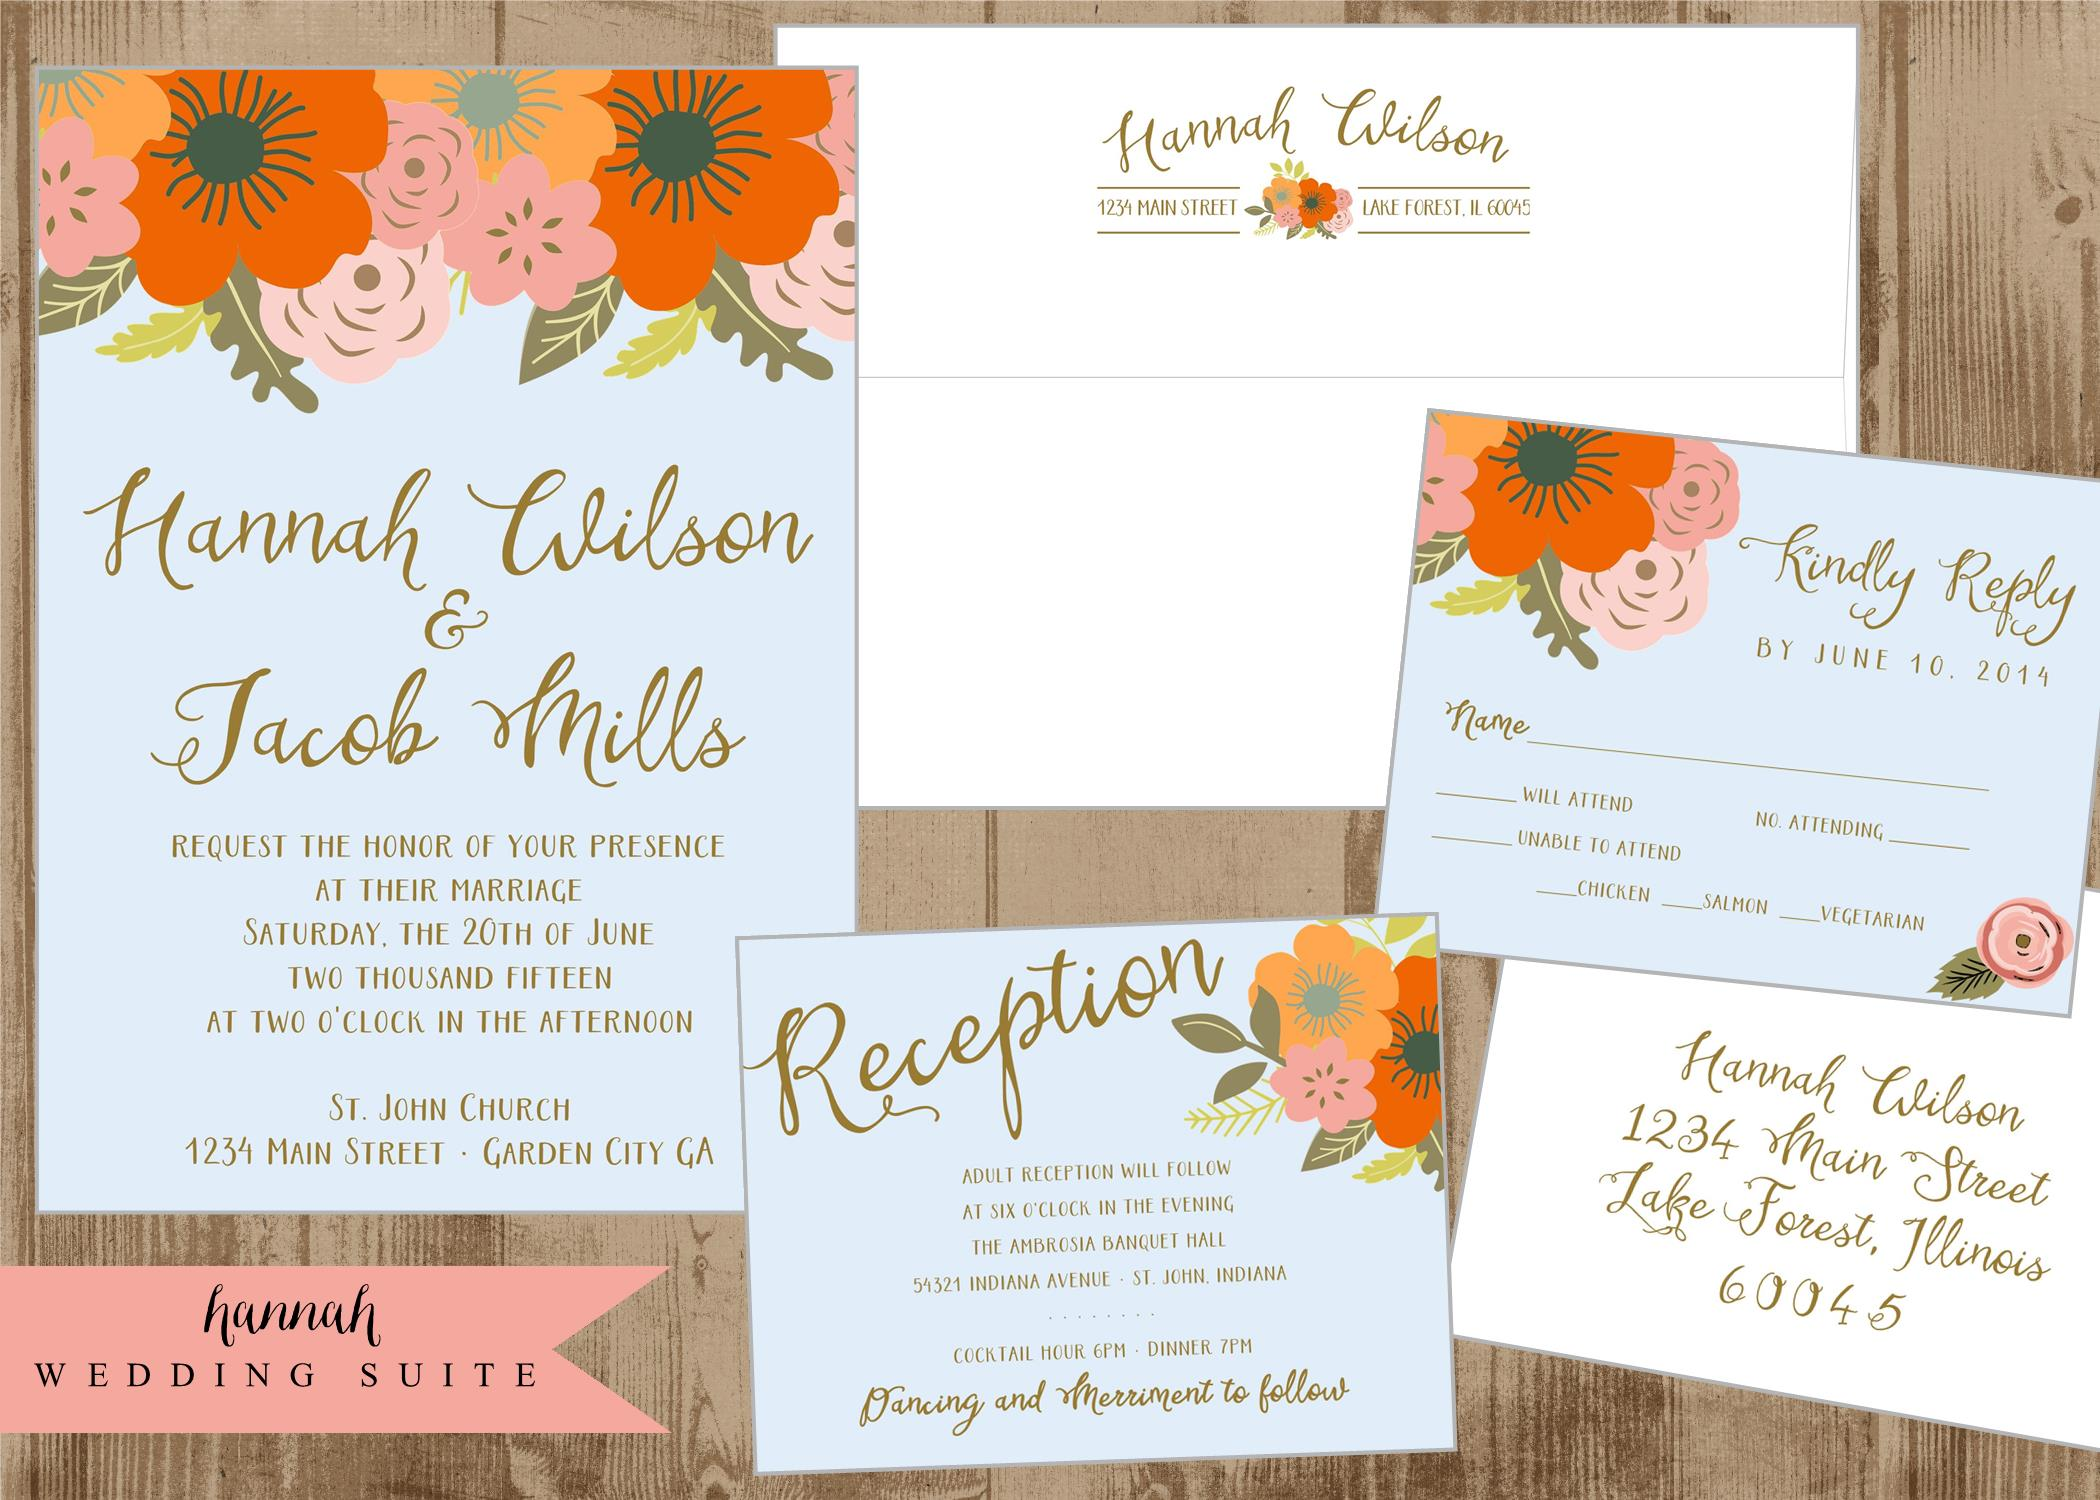 Printable Wedding Invitation Suite with Orange, Persimmon, Pink ...